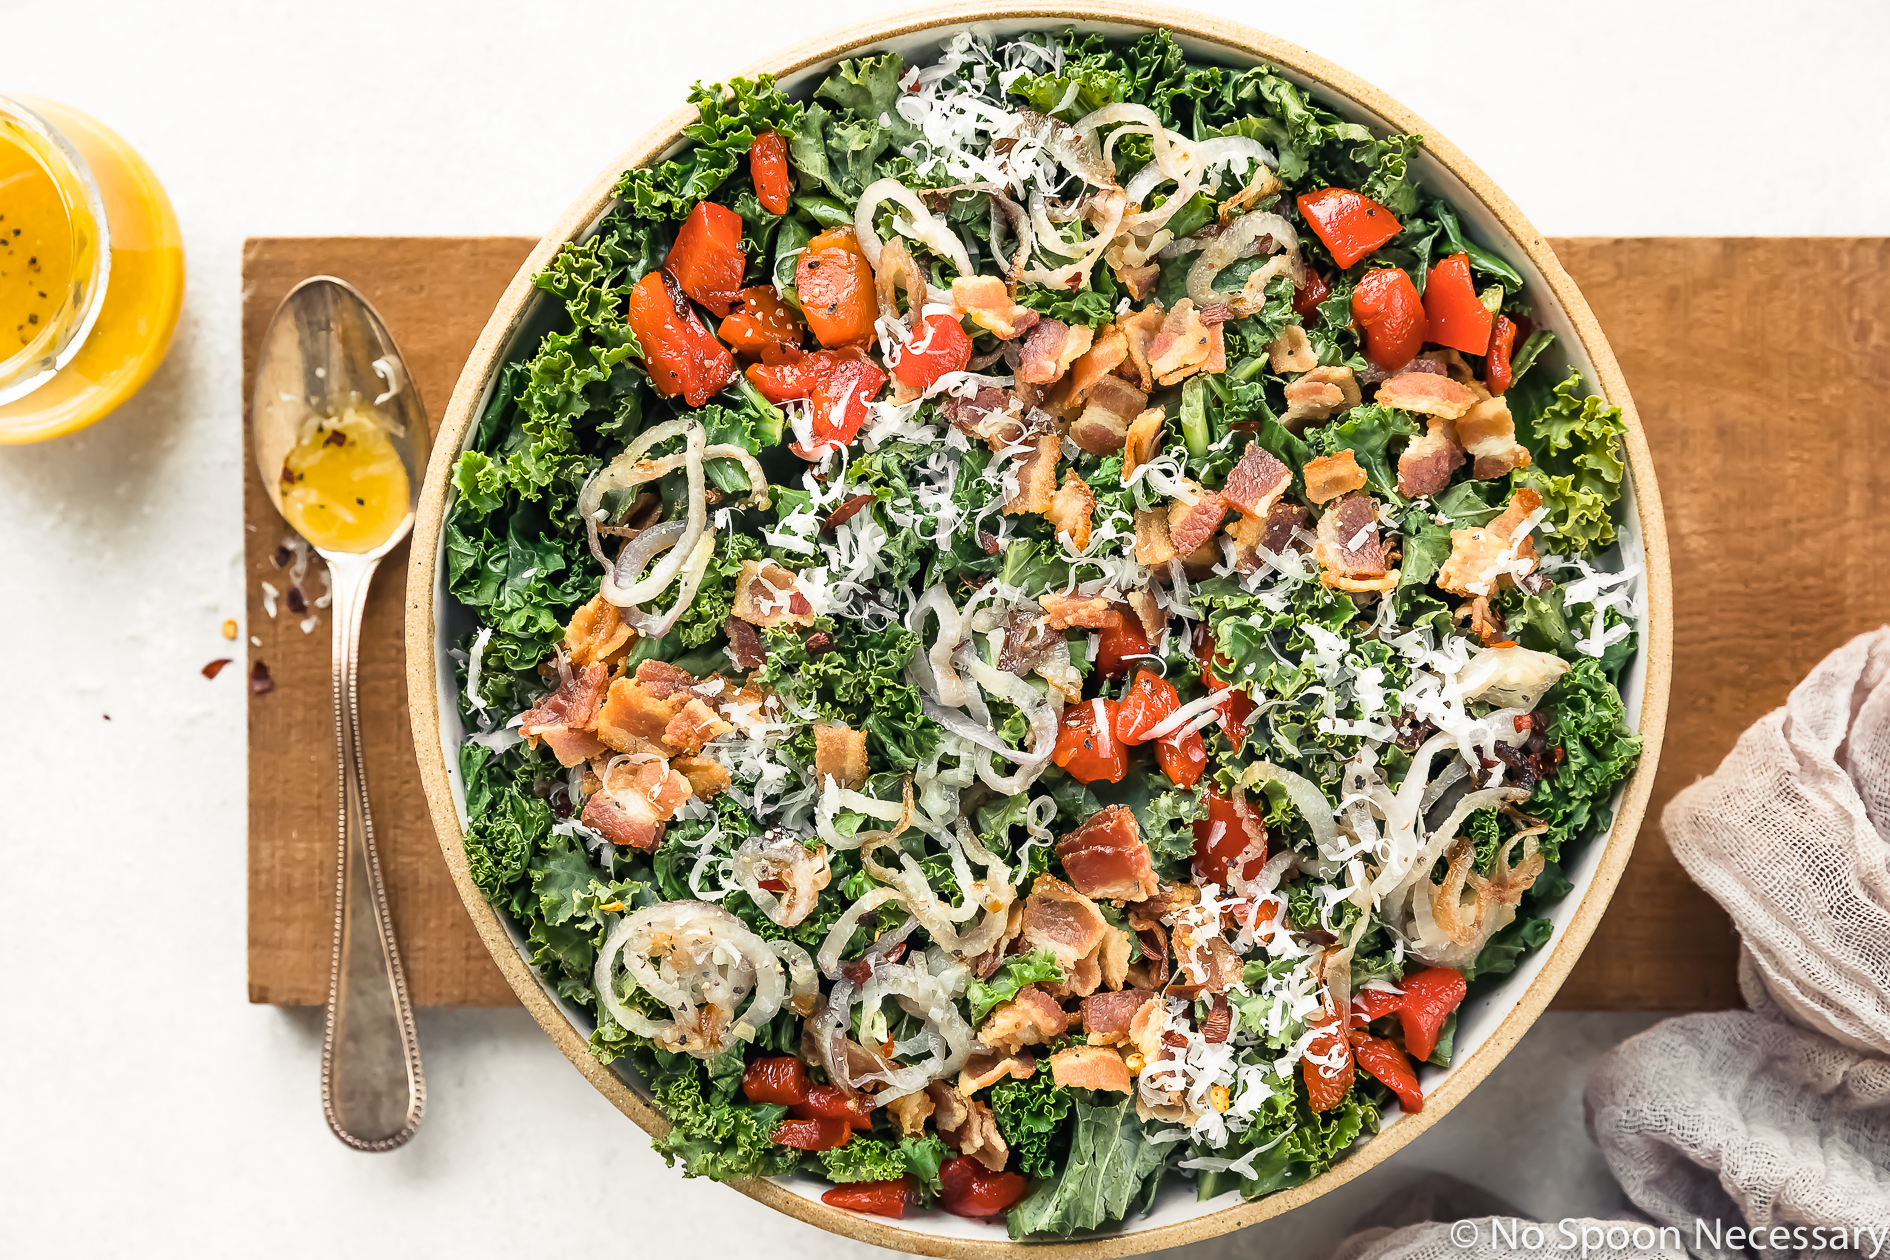 Overhead, landscape shot of Warm Kale Salad topped with bacon, shallots, roasted red peppers and shredded parmesan cheese in a large serving bowl with a small jar of Honey Dijon Vinaigrette, ramekin of crushed pepper flakes and a pale purple linen arranged around the bowl.